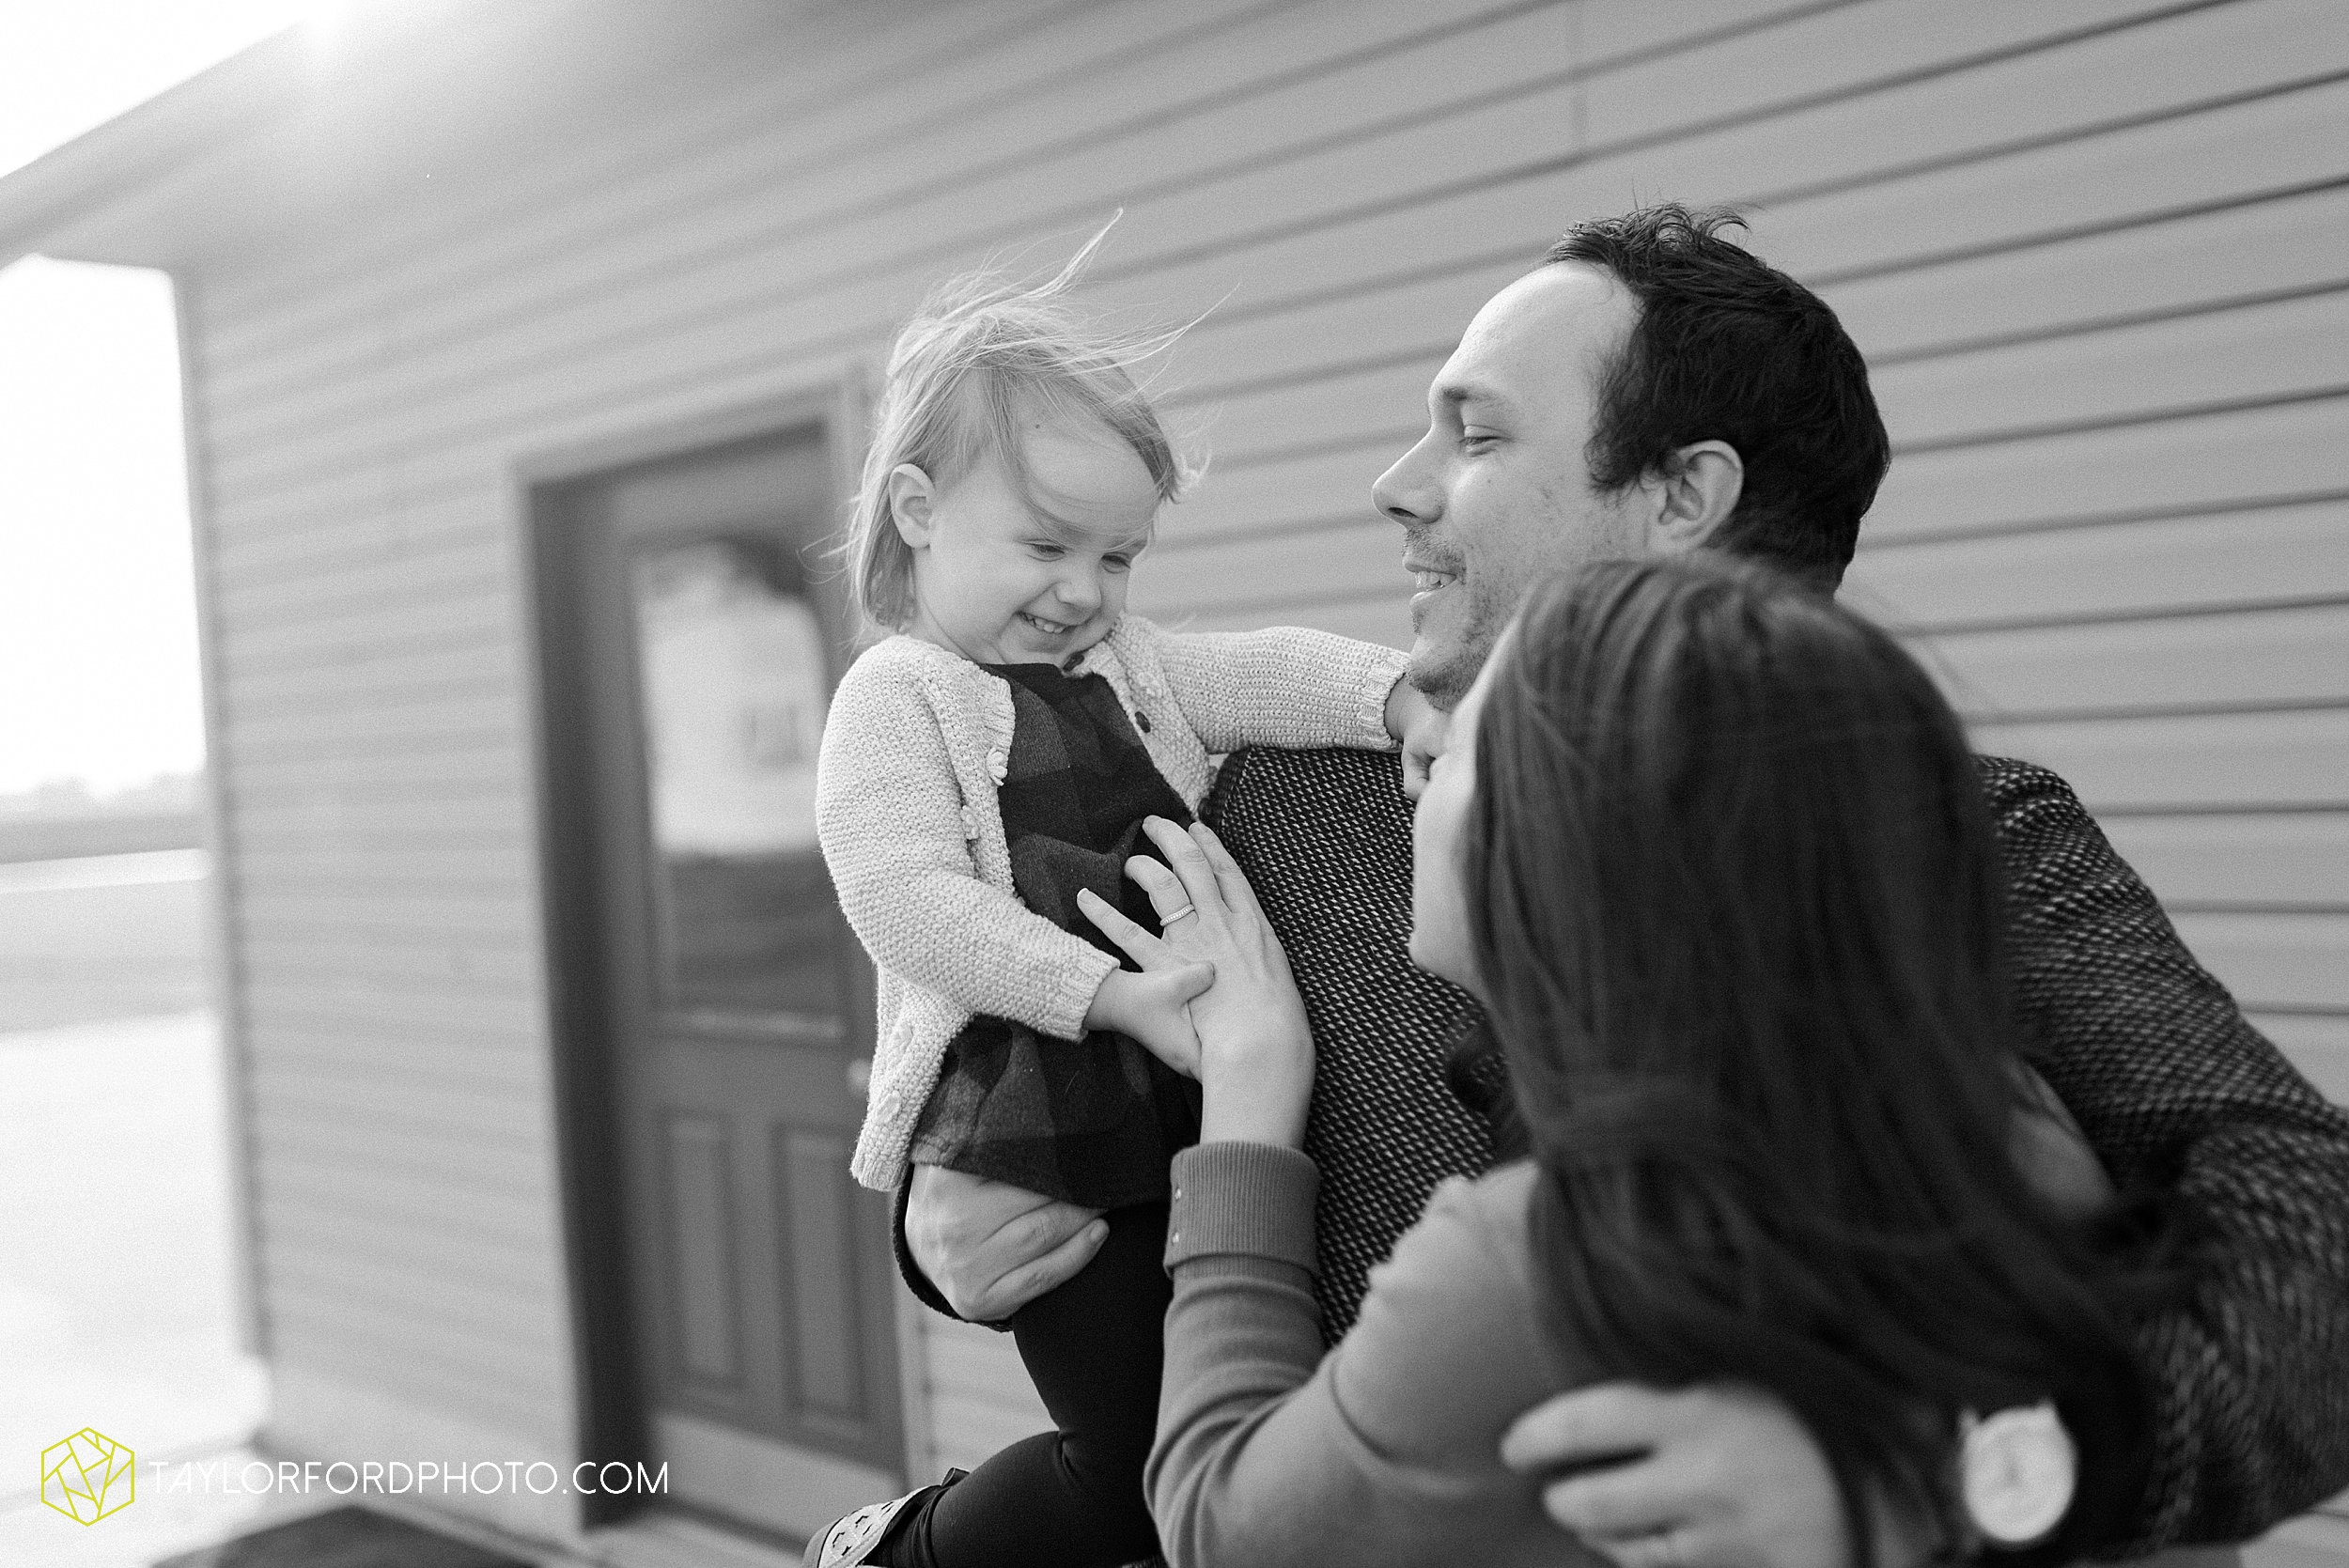 fortney-matthews-extended-family-van-wert-ohio-at-home-family-farm-photography-taylor-ford-hirschy-photographer_2031.jpg